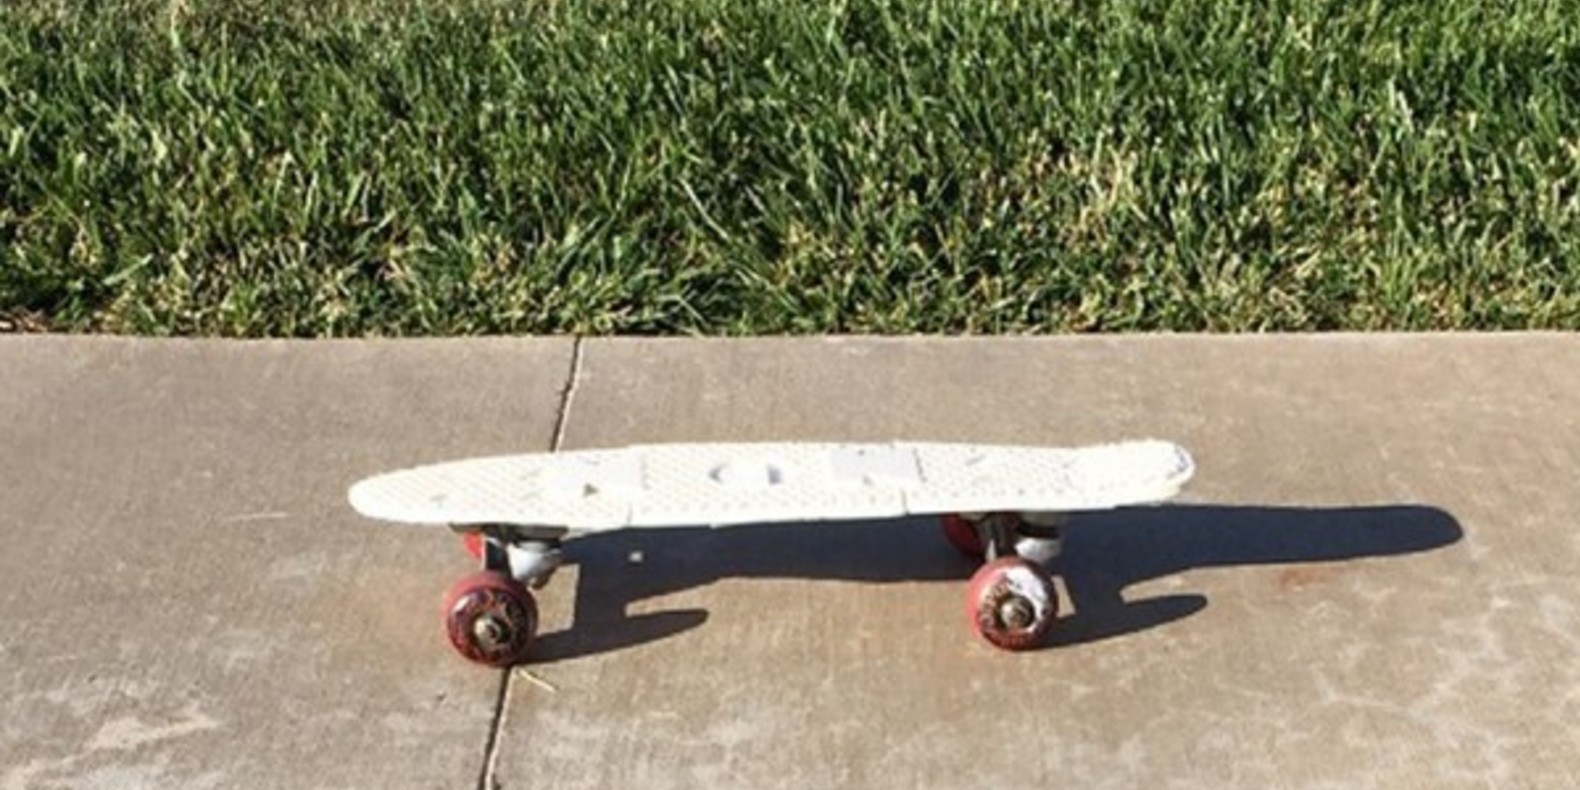 A Penny Board printed in 3D